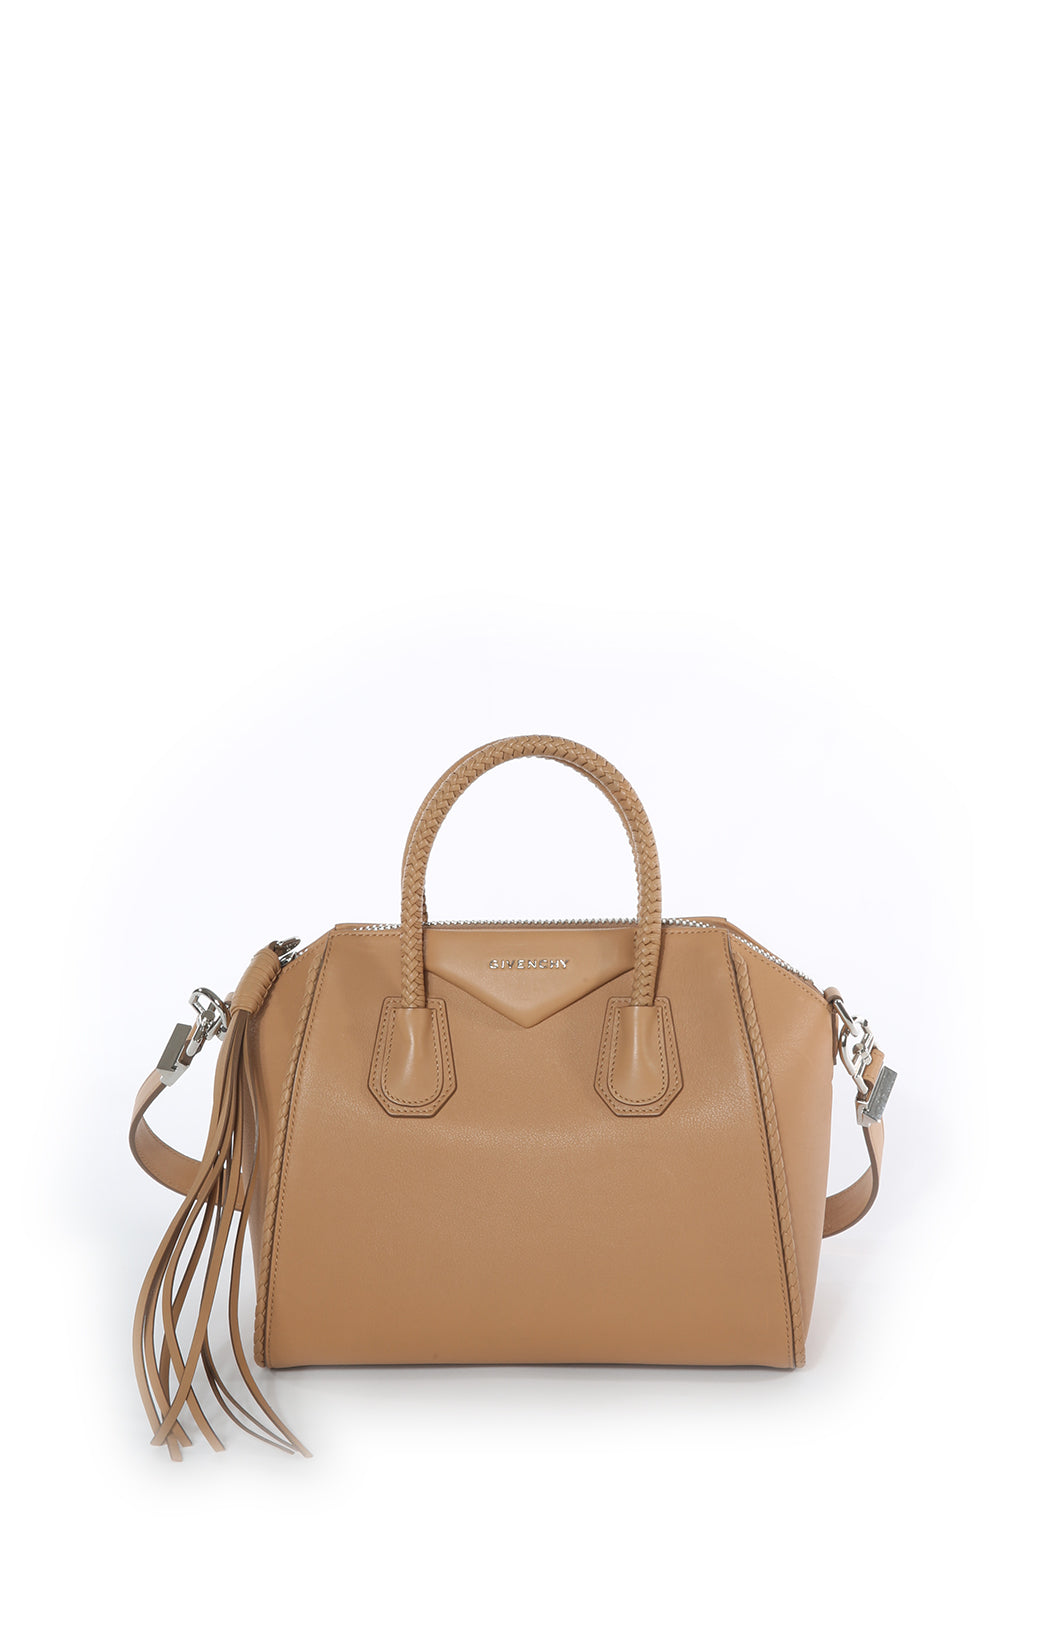 Front view of GIVENCHY Handbag Size: 13 in x 10 in x 7 in